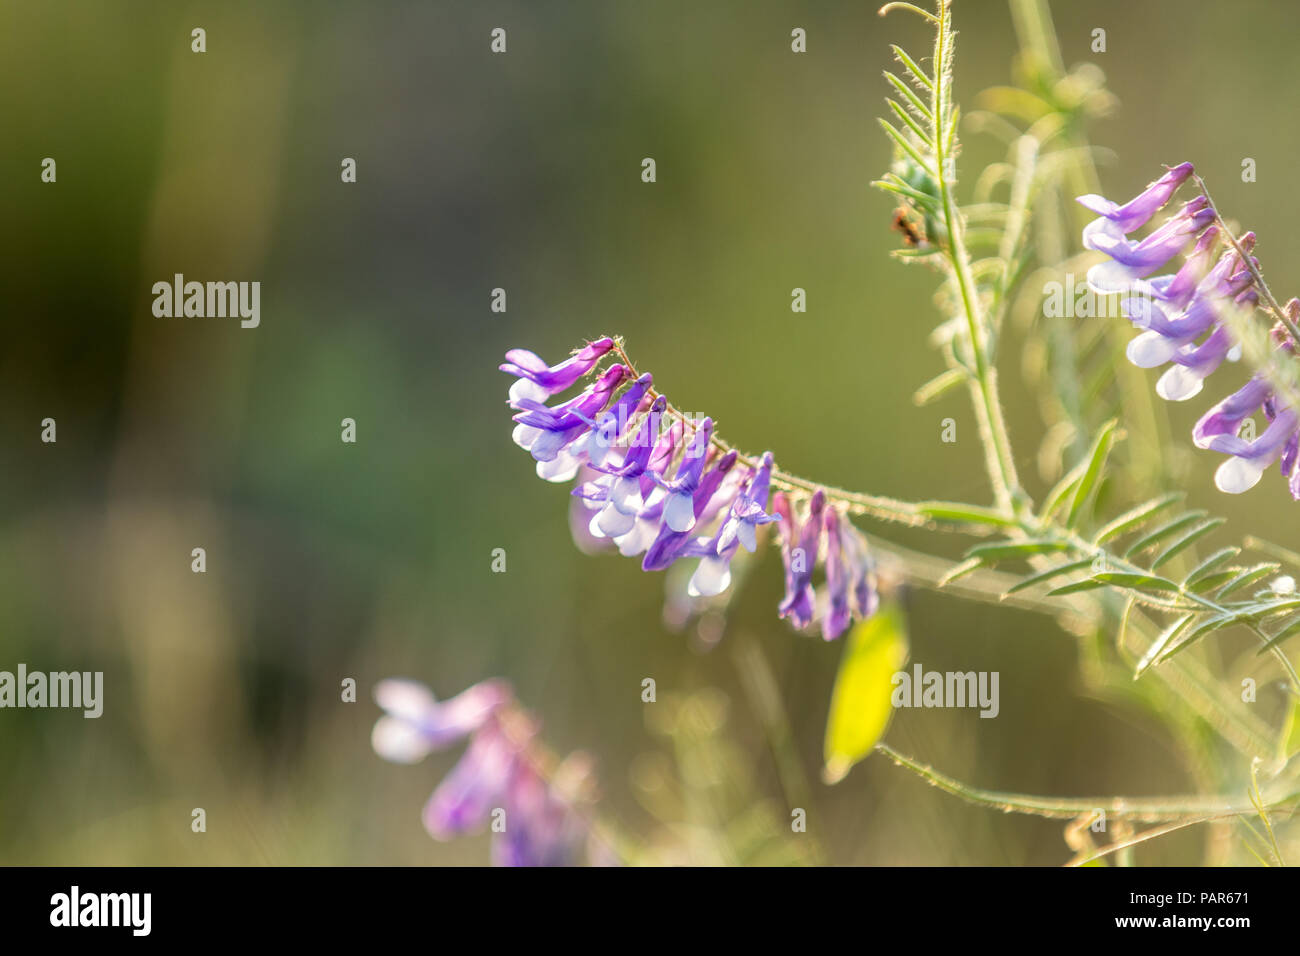 Vetch flowers close up in the field. Wild pea flowers blossom. Sunset backlight, dolly shot, shallow depth of the field, 50 fps. - Stock Image